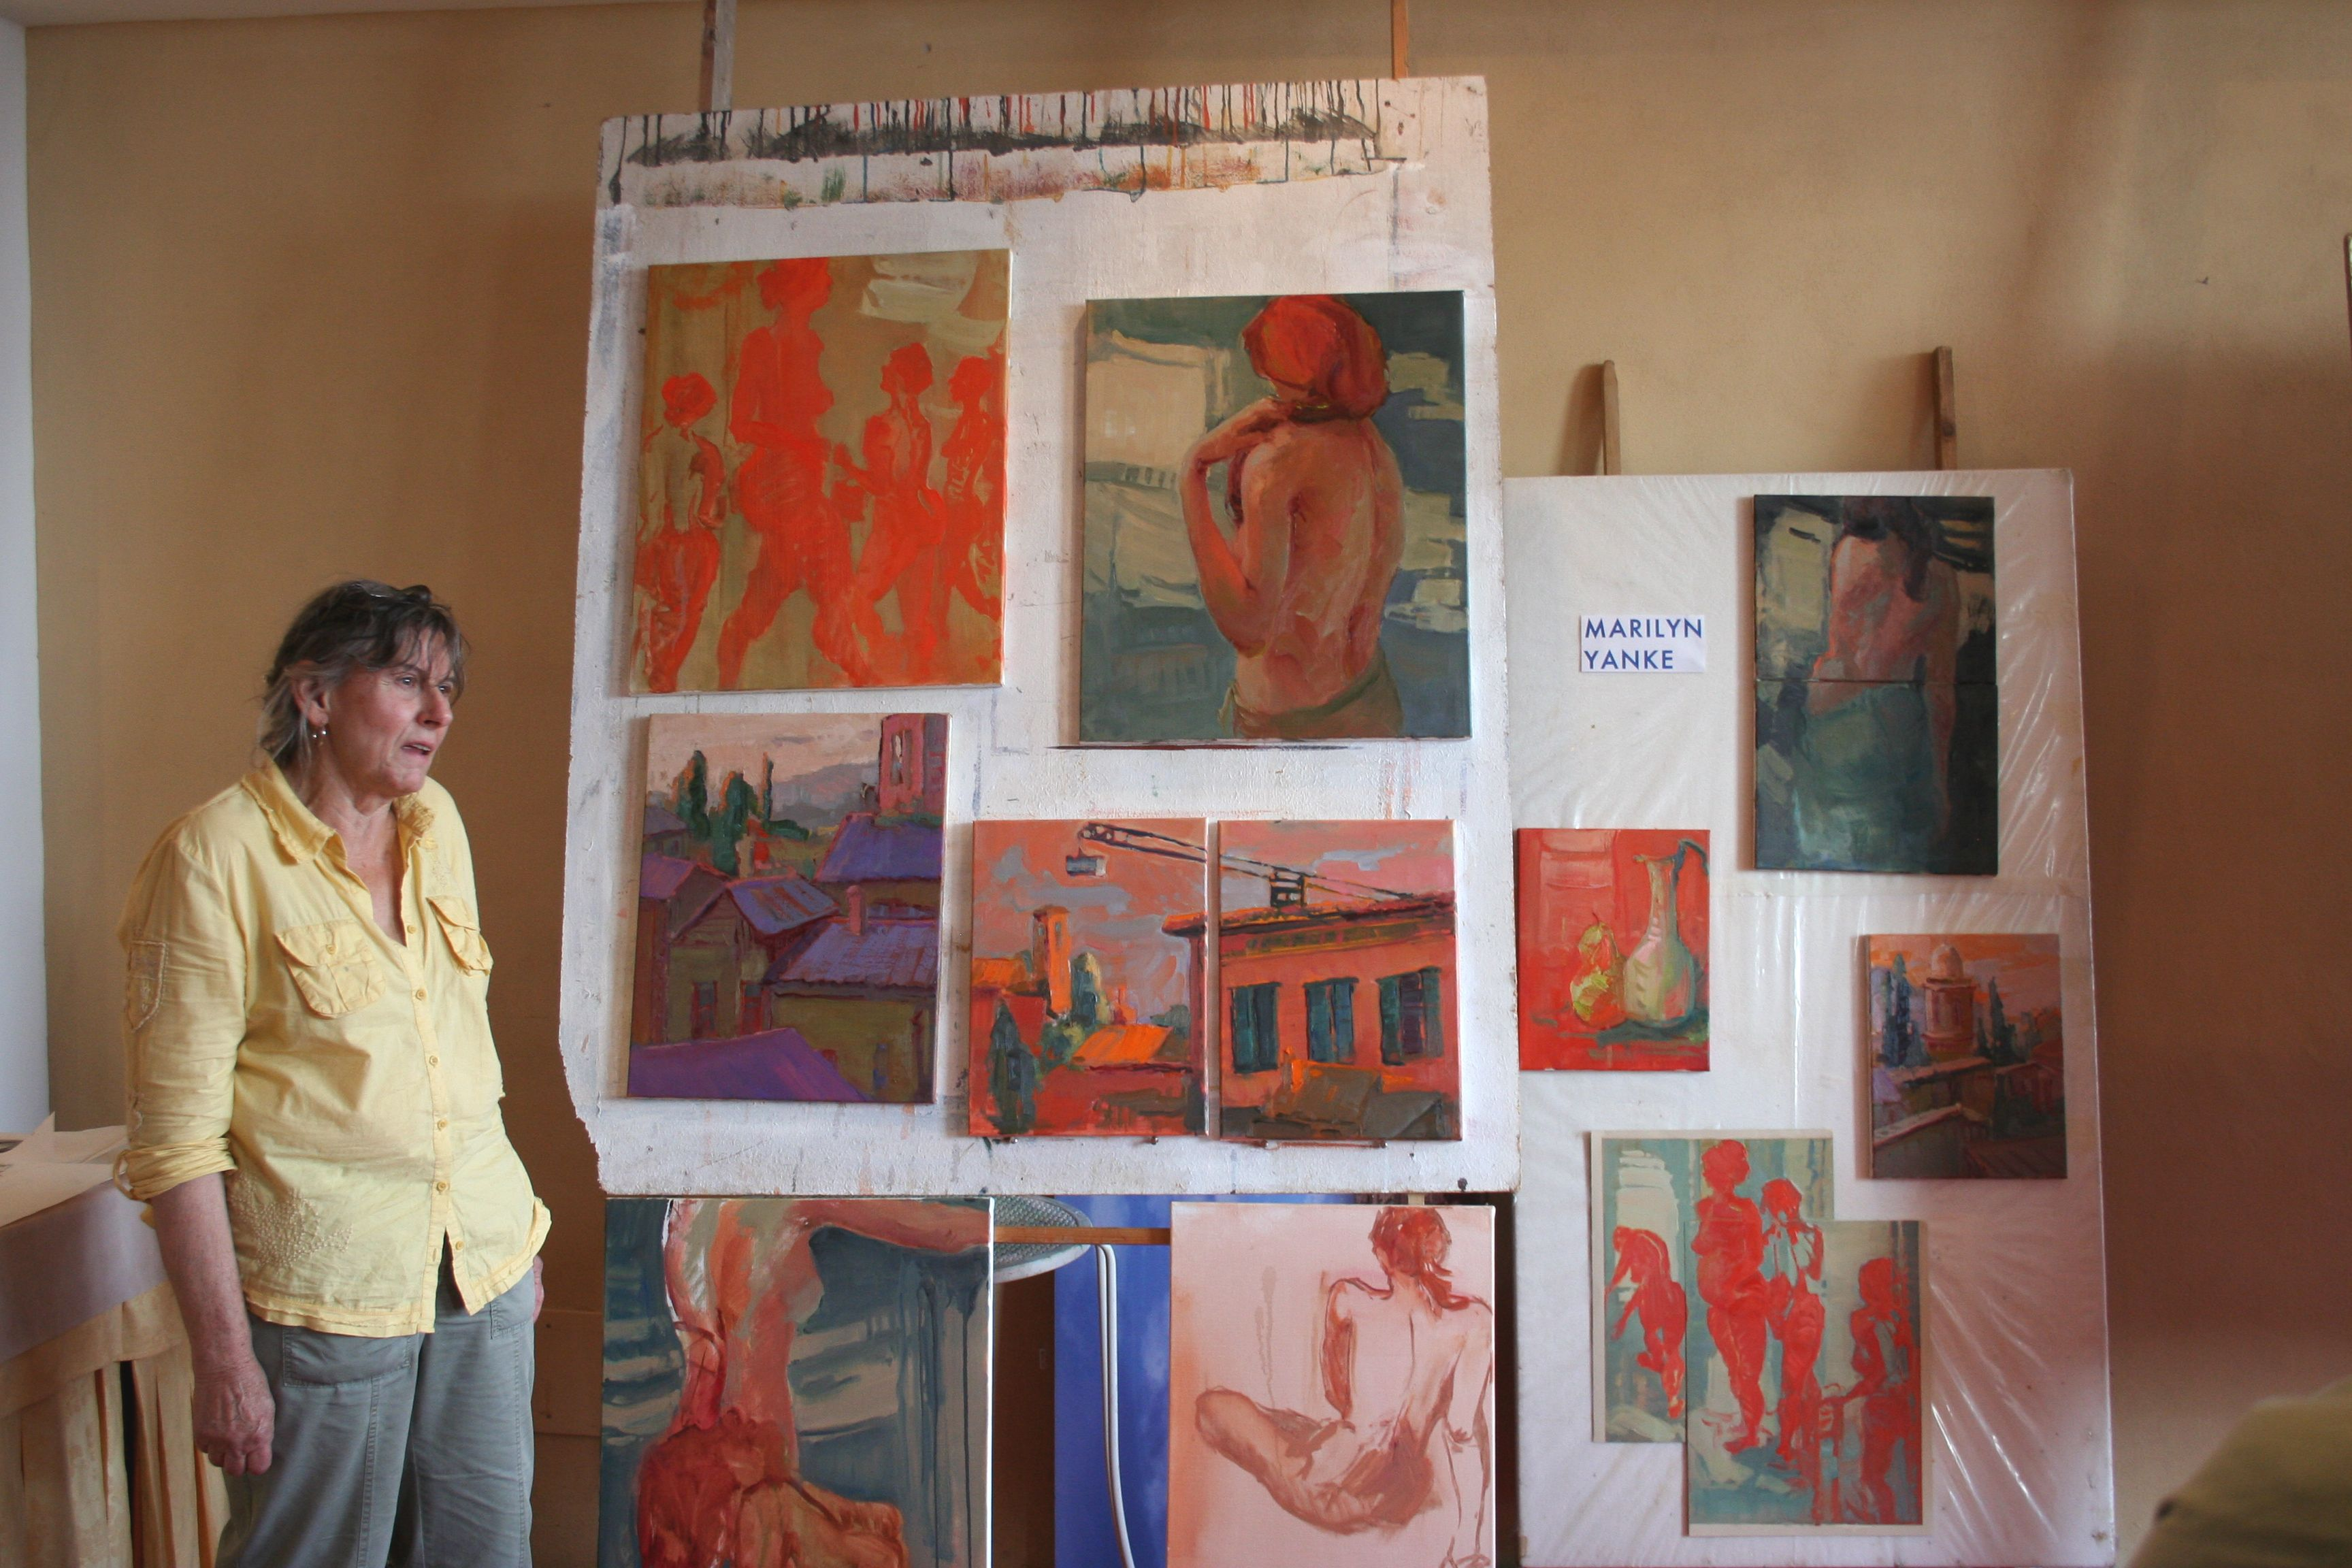 A full wall of Marilyn Yanke's expressive oil paintings inspired by Assisi, Italy